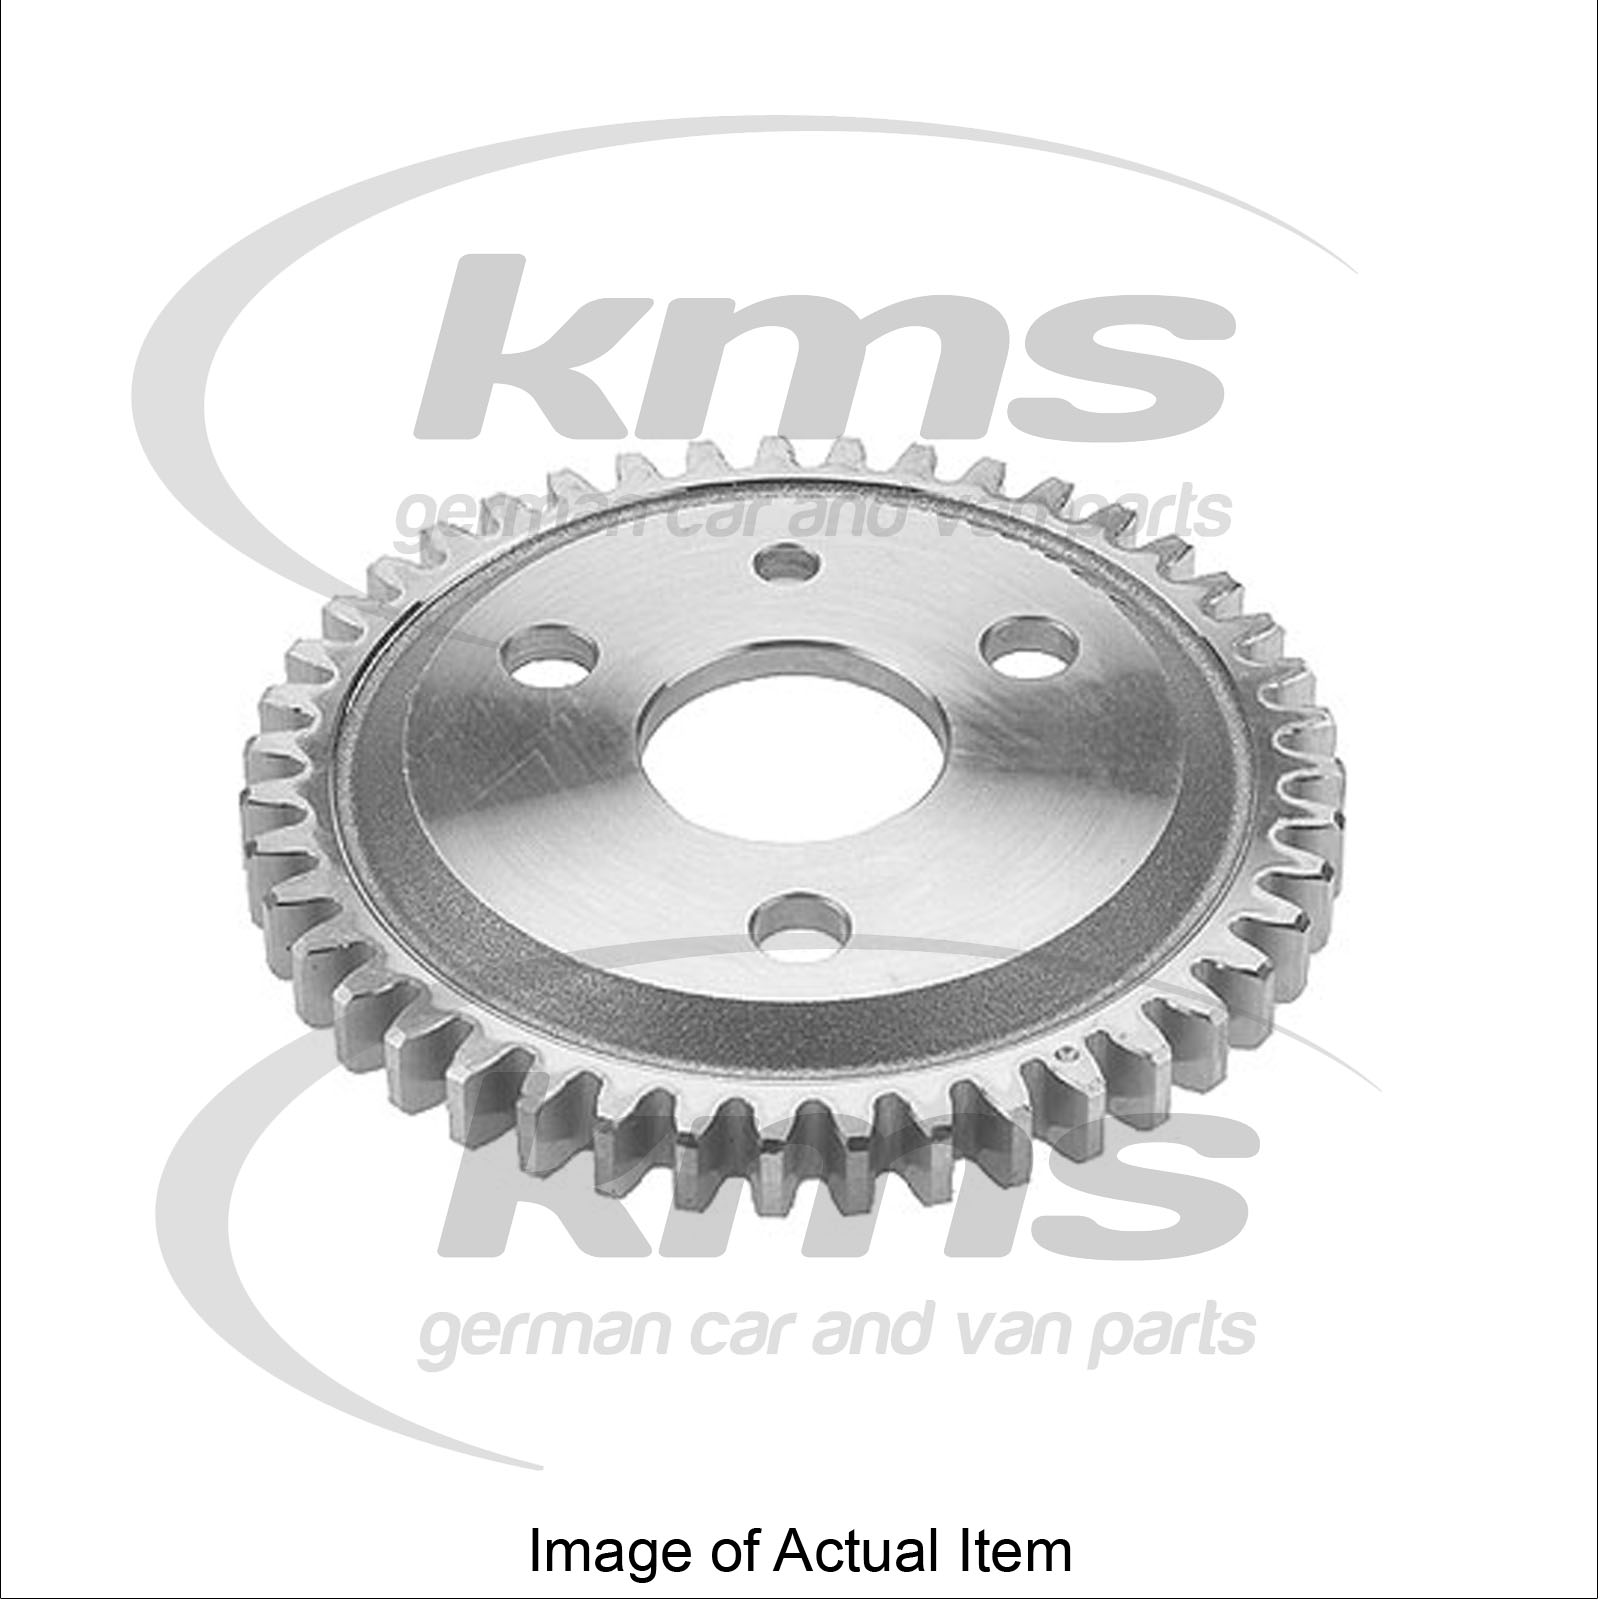 CAMSHAFT TIMING GEAR Mercedes Benz V Class MPV V220CDi